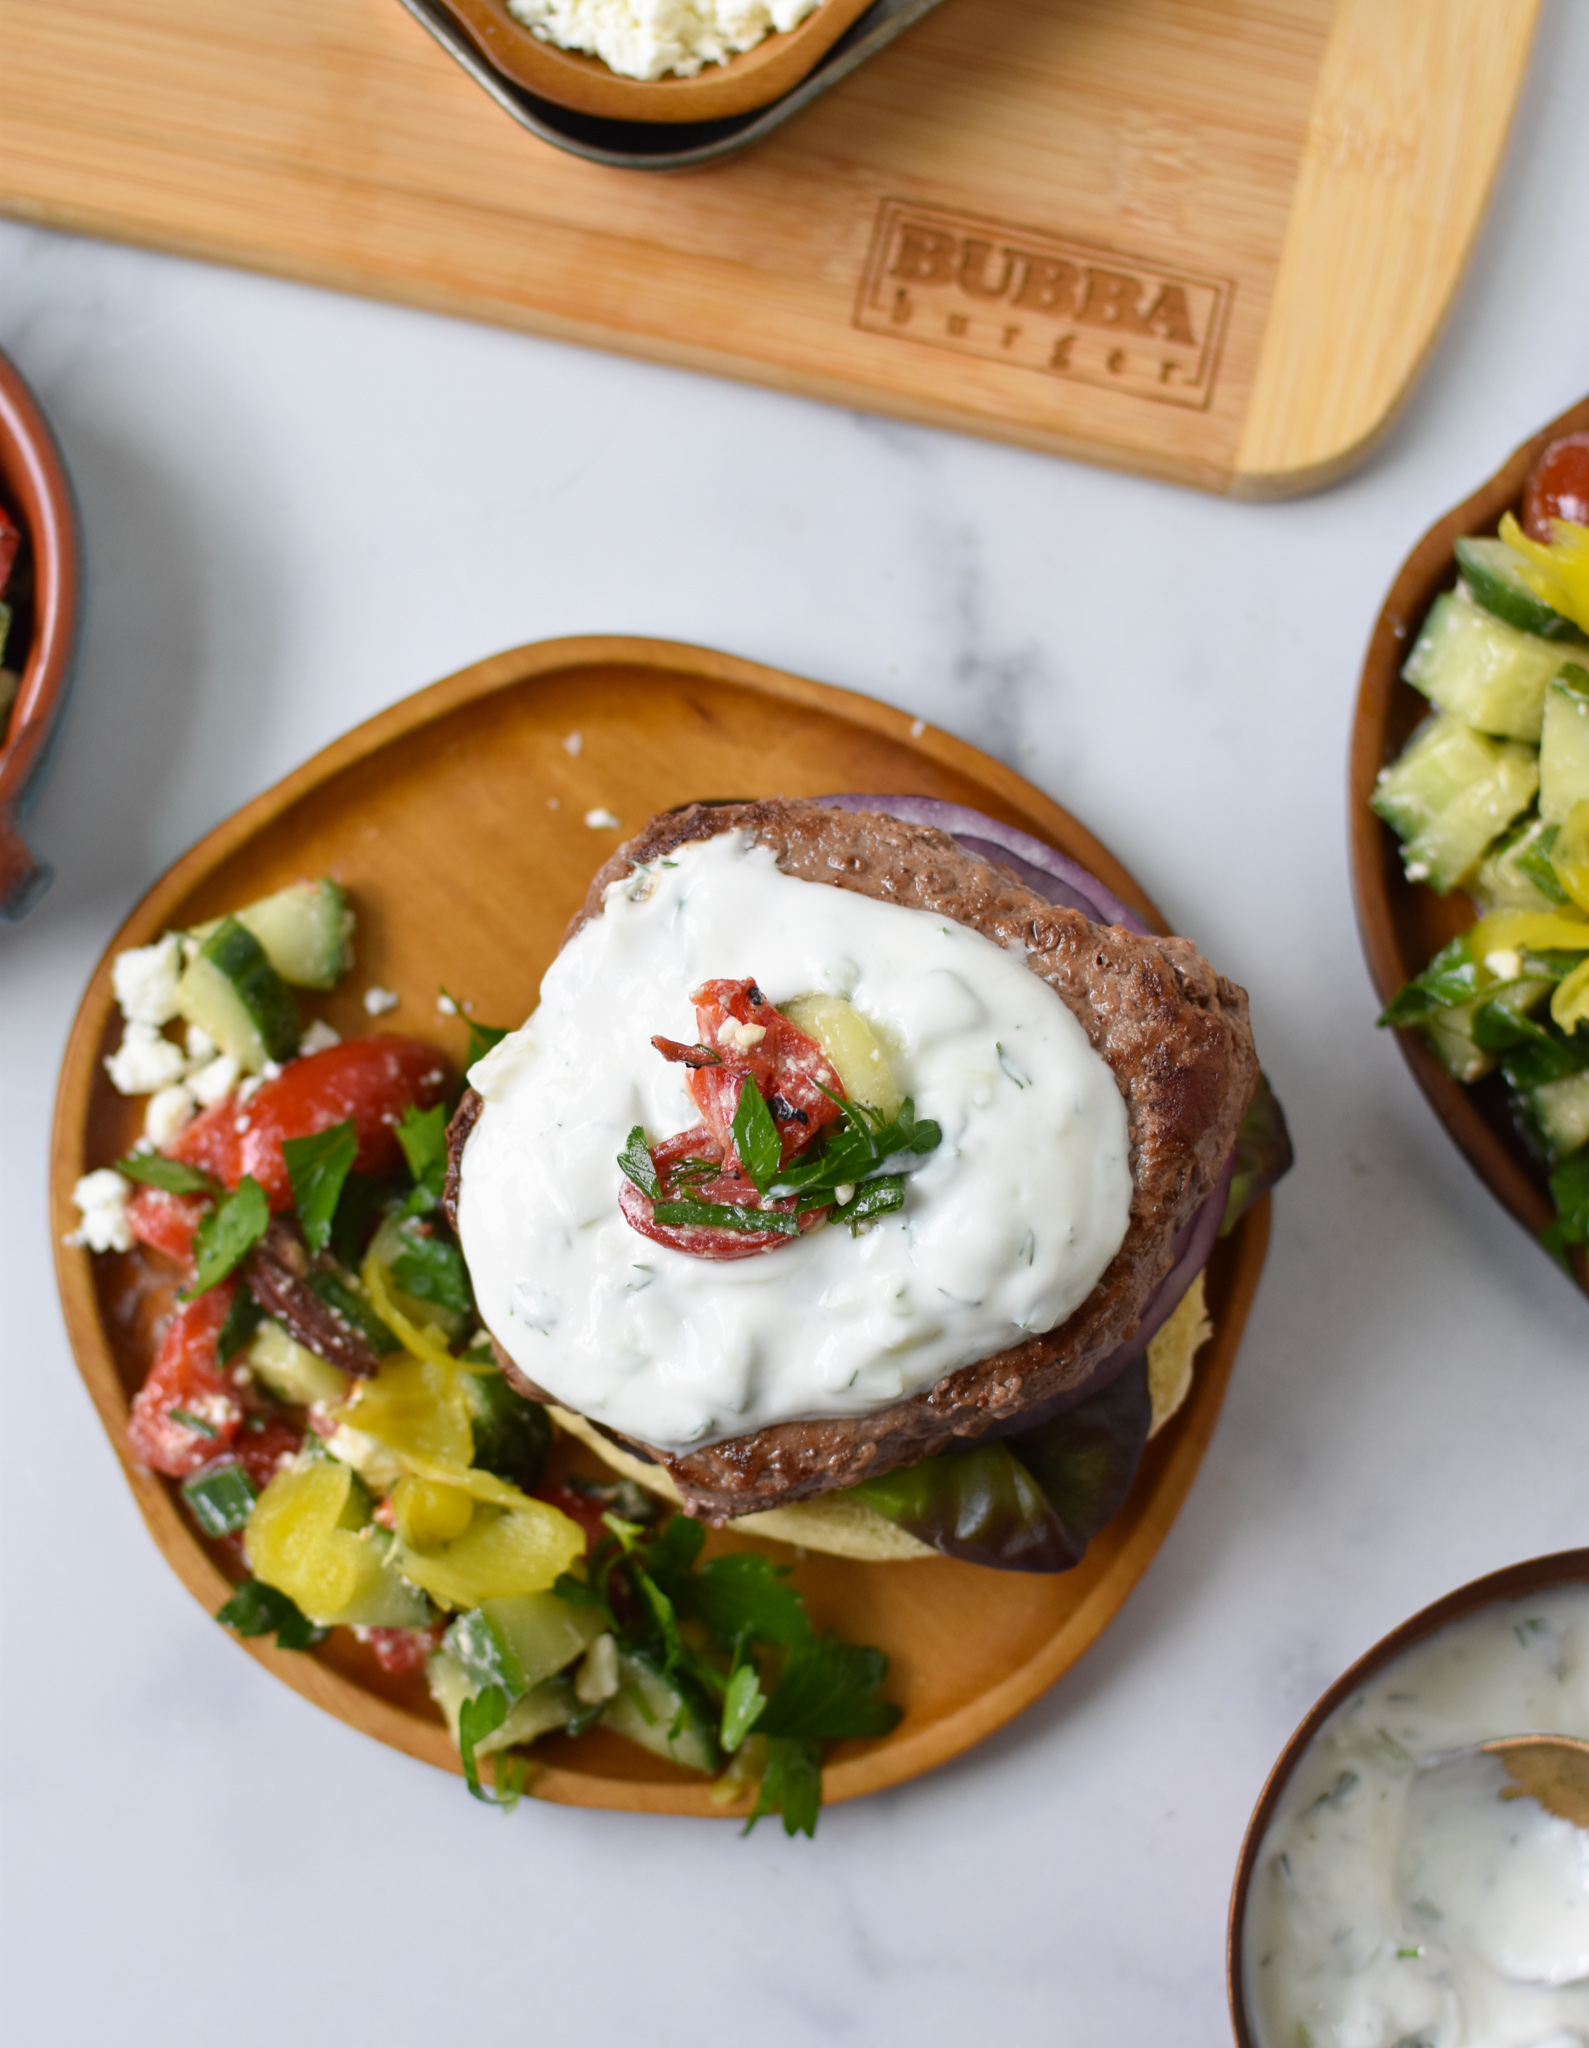 Easy Greek Burger Recipe above on wood plate.